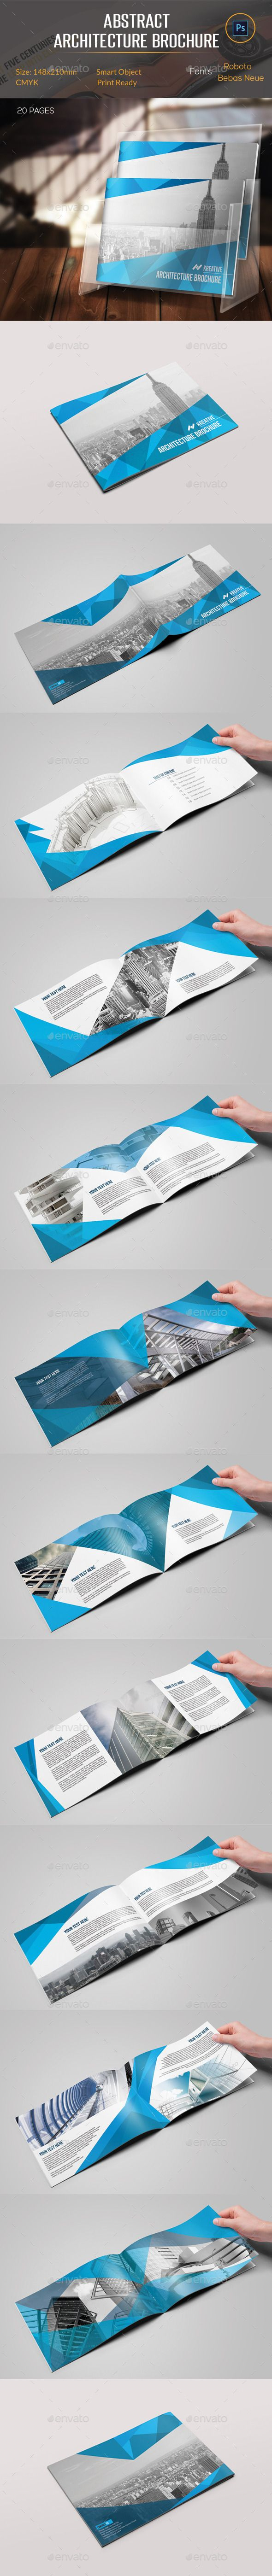 Abstract Architecture Brochure  Brochures Architecture And